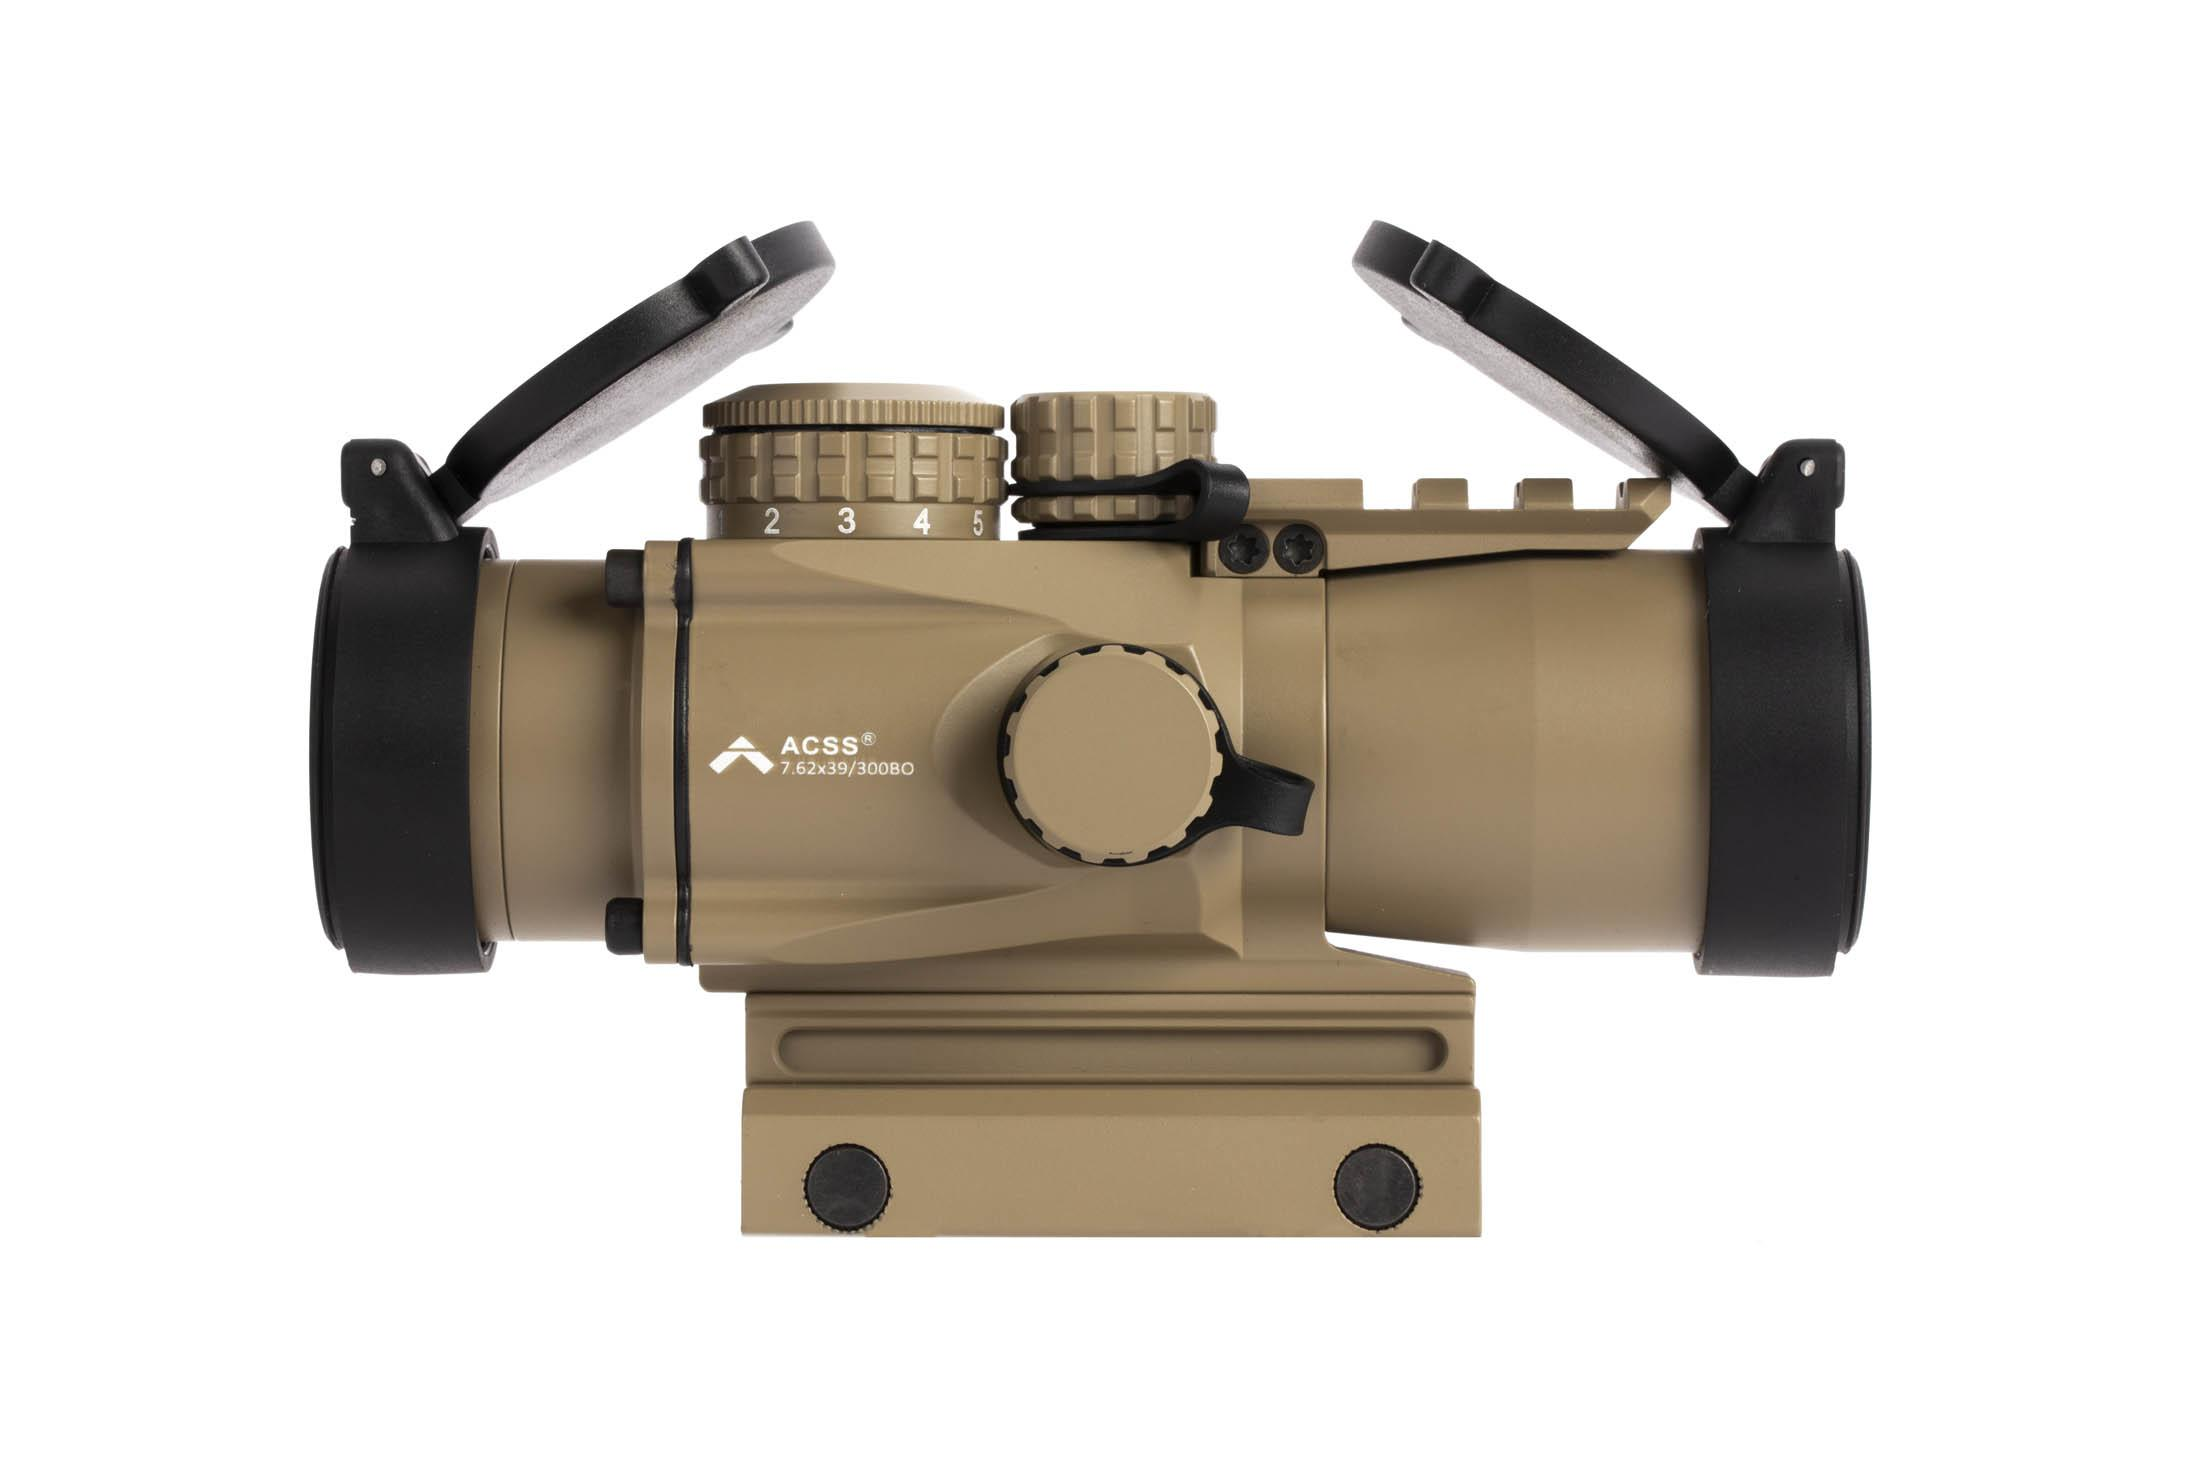 PA flat dark earth 3X Prism scope gen 2 with ACSS 7.62x29 / 300 BLK CQB reticle has tethered caps and 11 brightness settings